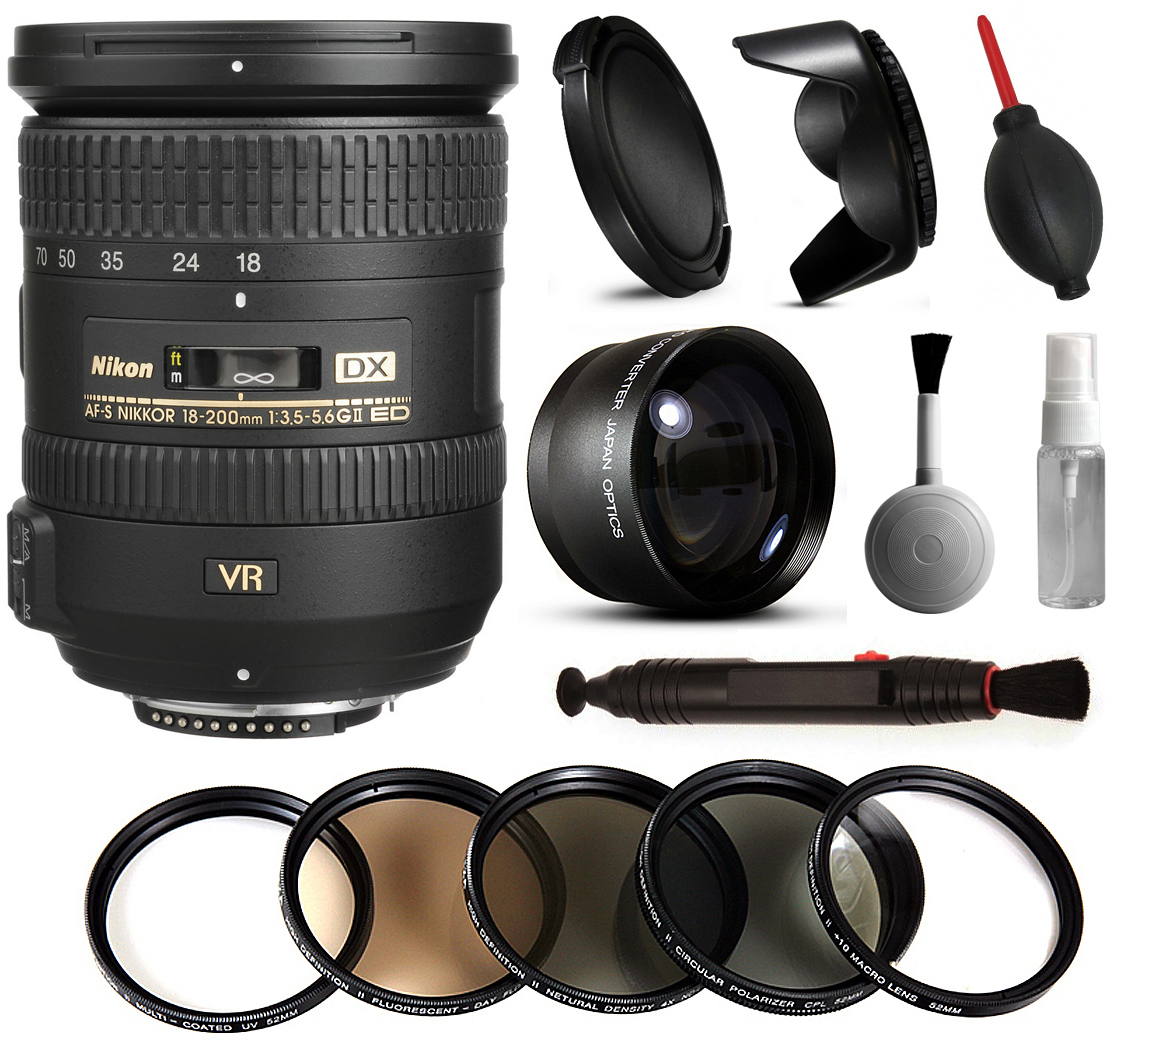 Nikon 18-200mm VR II Lens 2192 + Beginner Accessories Bundle includes 5 Piece Filter Set + 2.2x Adapter for Nikon DF D7200 D7100 D7000 D5500 D5300 D5200 D5100 D5000 D3300 D3200 D3100 D3000 D300S D90